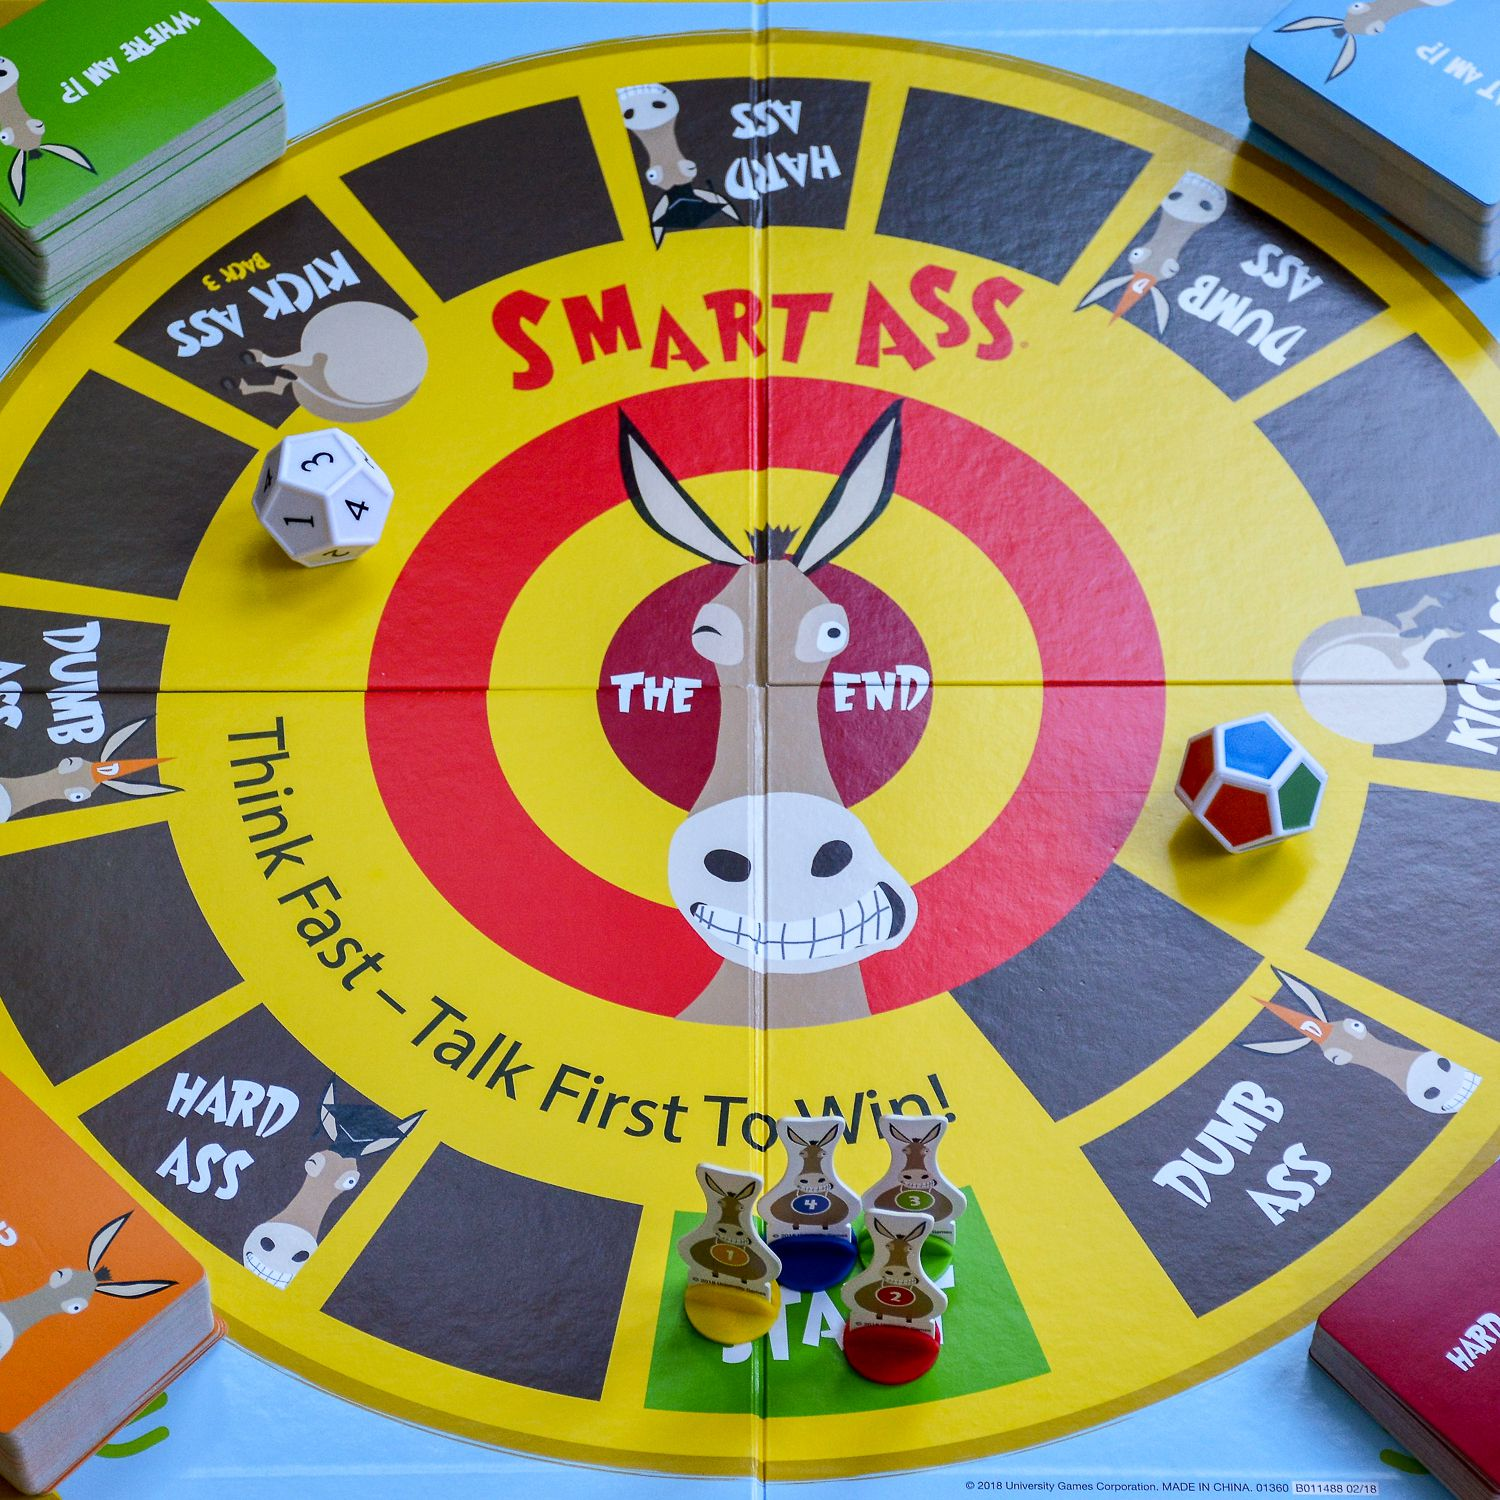 Smart Ass Review: A Must-Have Board Game For Trivia Buffs